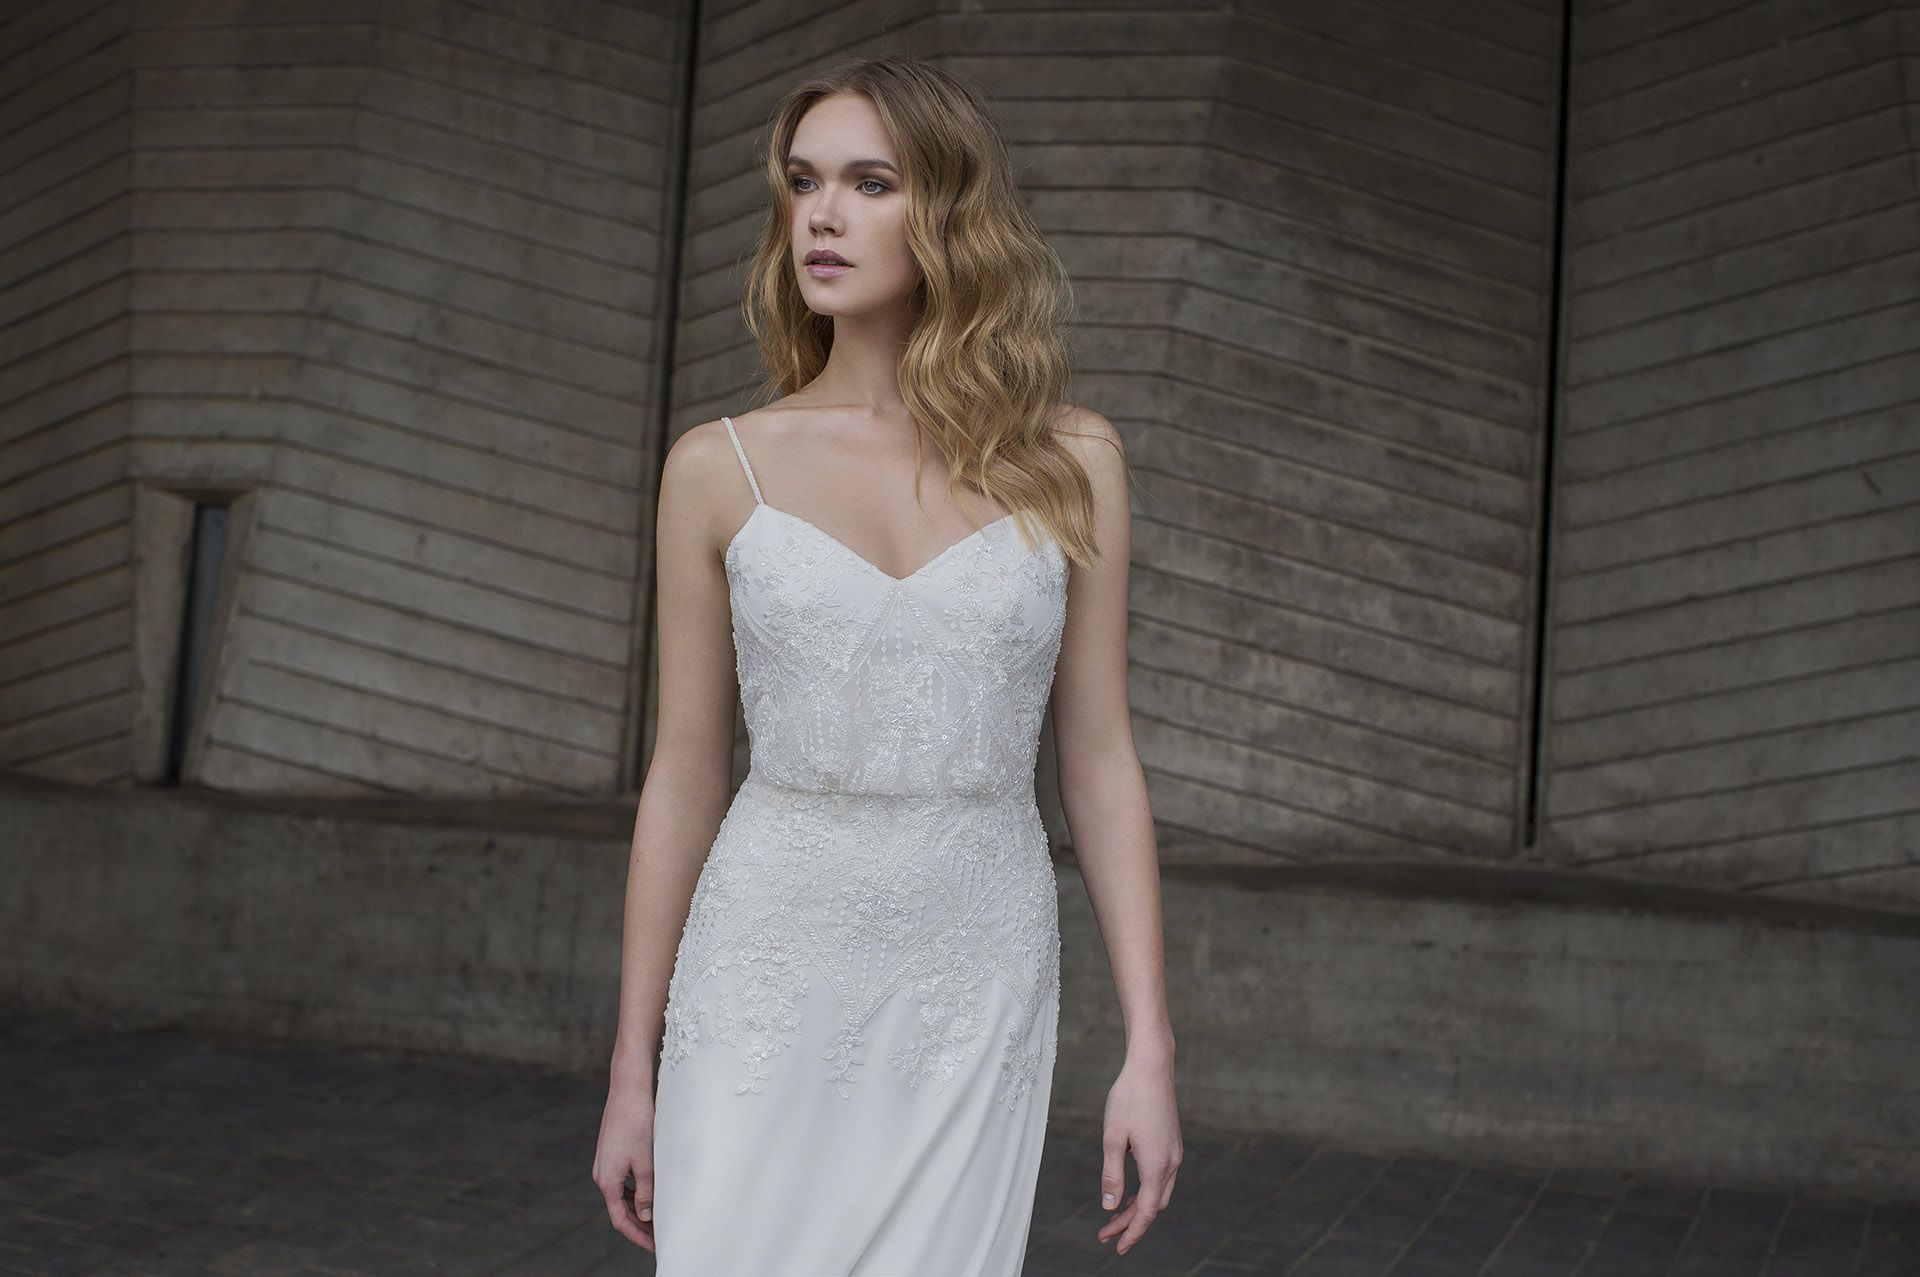 Limor rosen new bridal collection lillian dress urban dreams luellas bridal is a gorgeous vintage style bridal boutique in wimbledon london filled with beautiful wedding dresses bridesmaid dresses and accessories ombrellifo Image collections